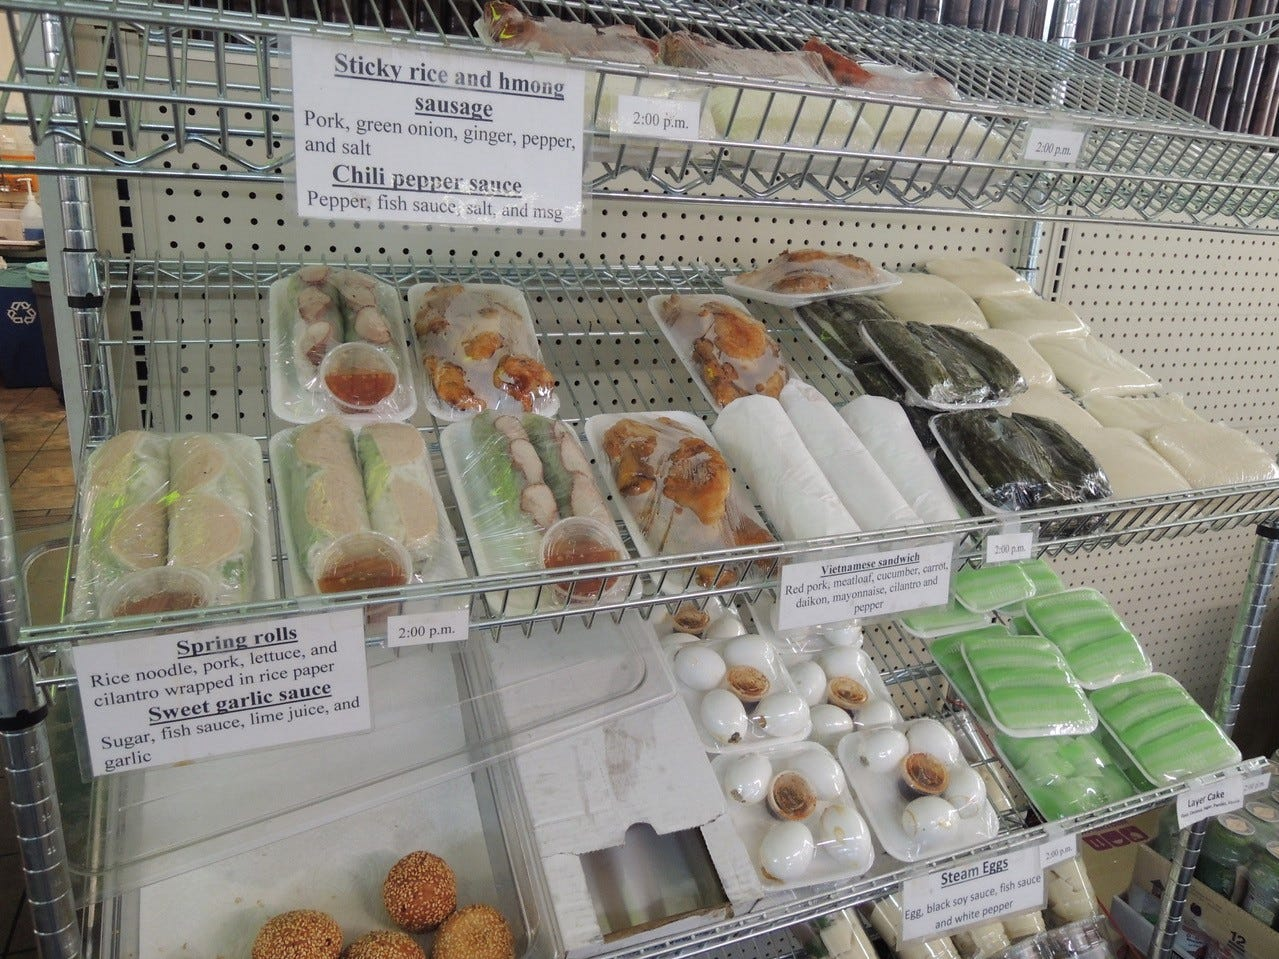 Some of the popular grab-and-go food items include spring rolls and steamed buns.